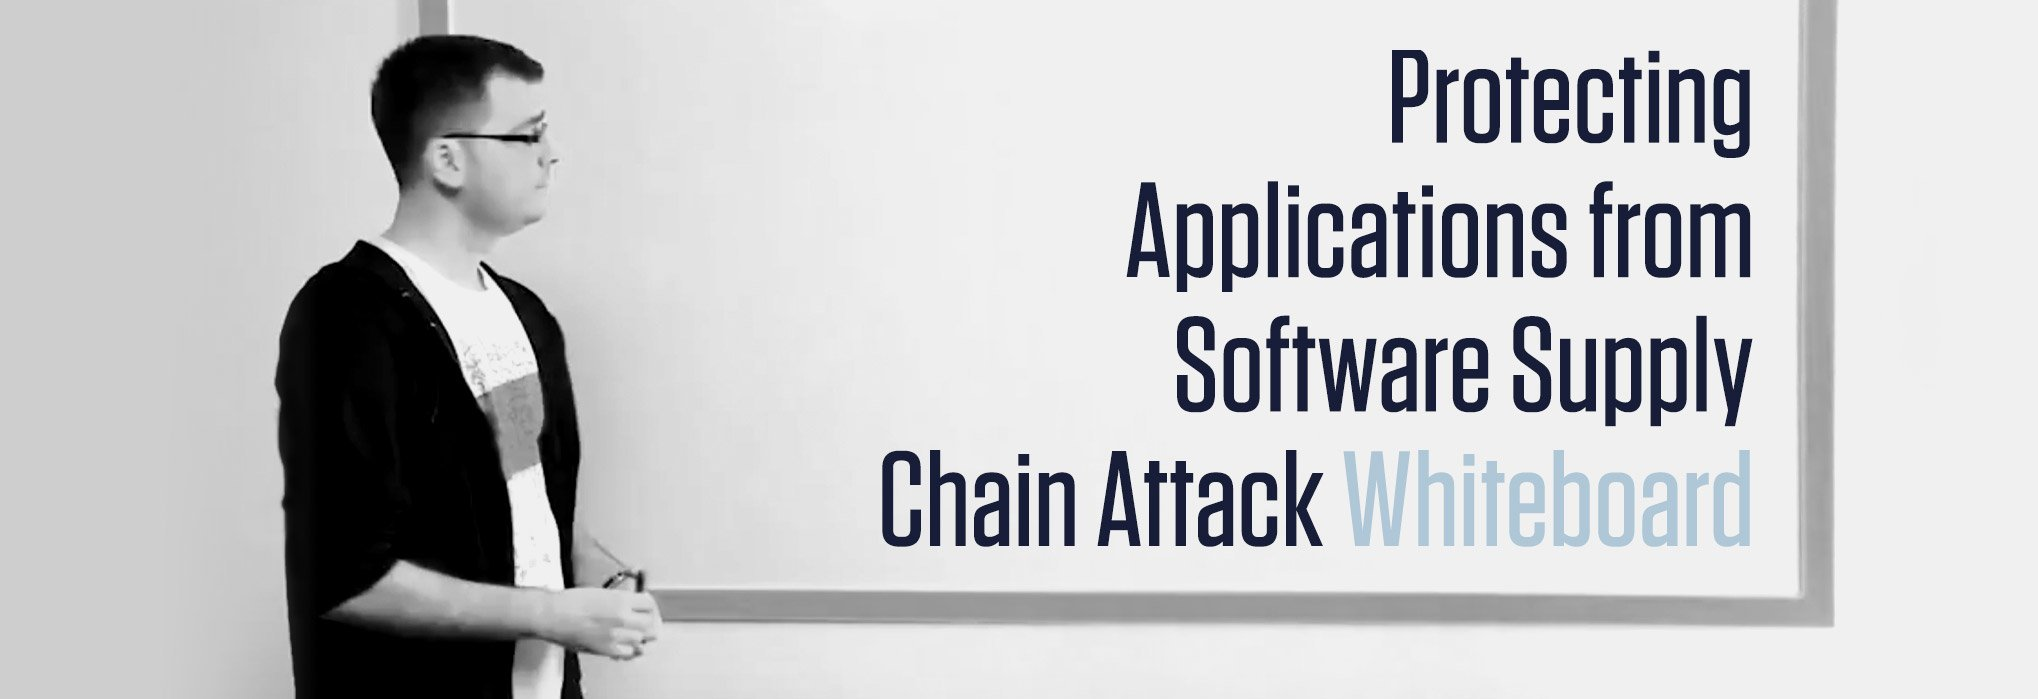 Protecting Applications from Software Supply Chain Attacks